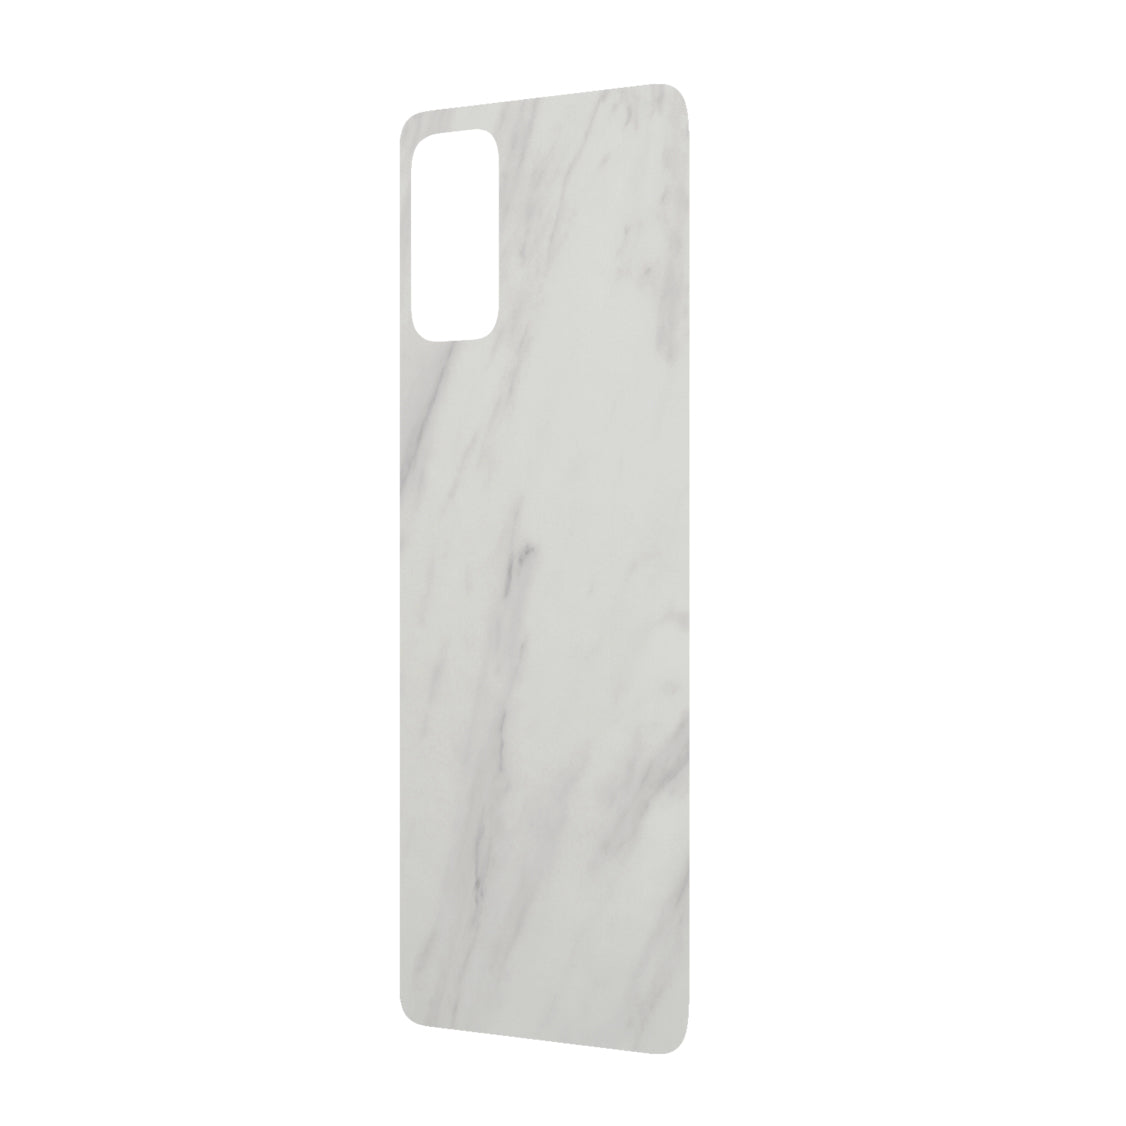 RhinoShield Impact Skin For Samsung S20 Plus - White Marble - Macintosh Addict